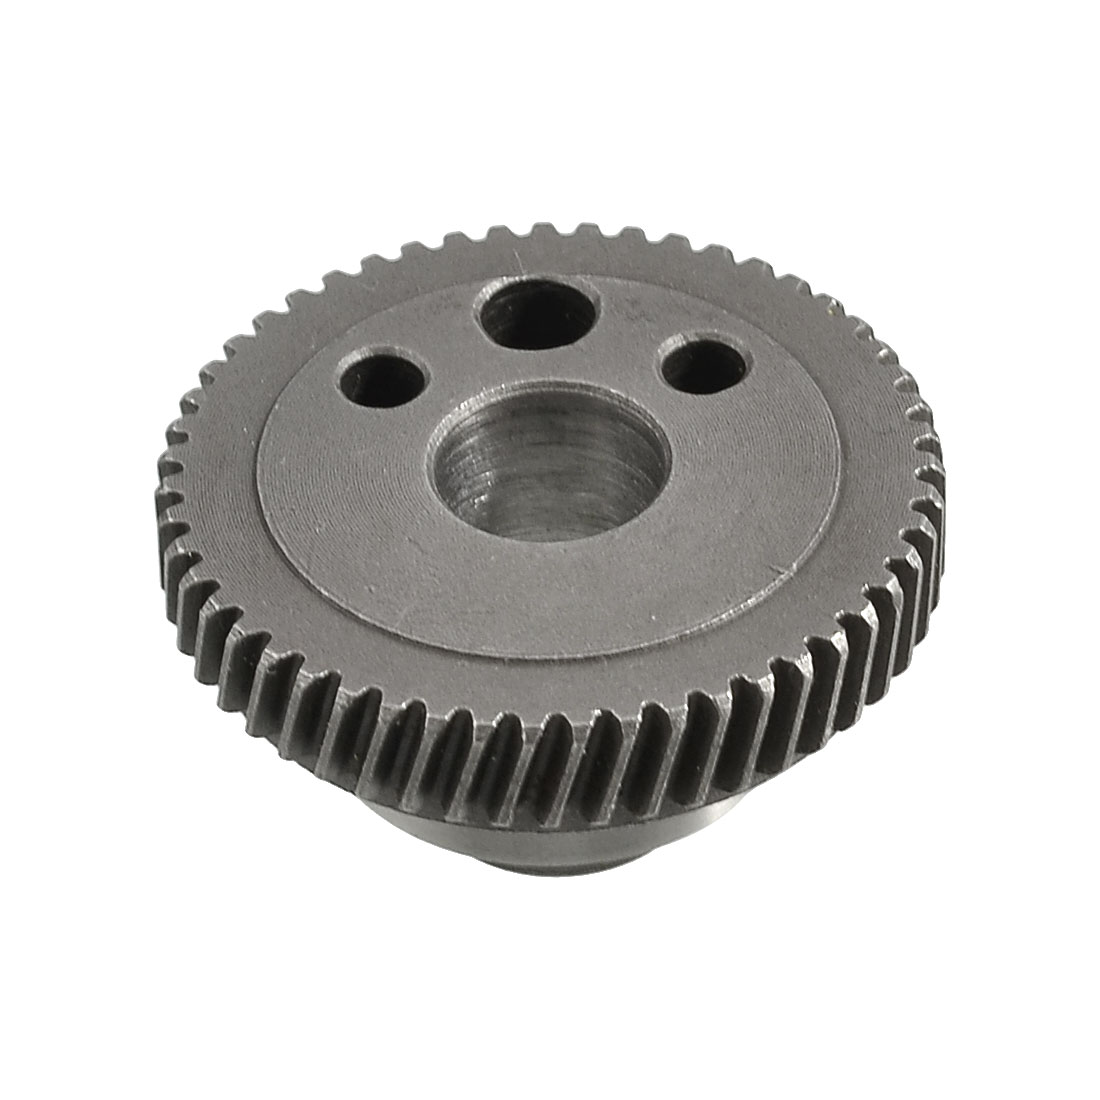 12mm-Bore-Dia-Metal-4300-Spiral-Bevel-Gear-Power-Tool-for-Angle-Grinder